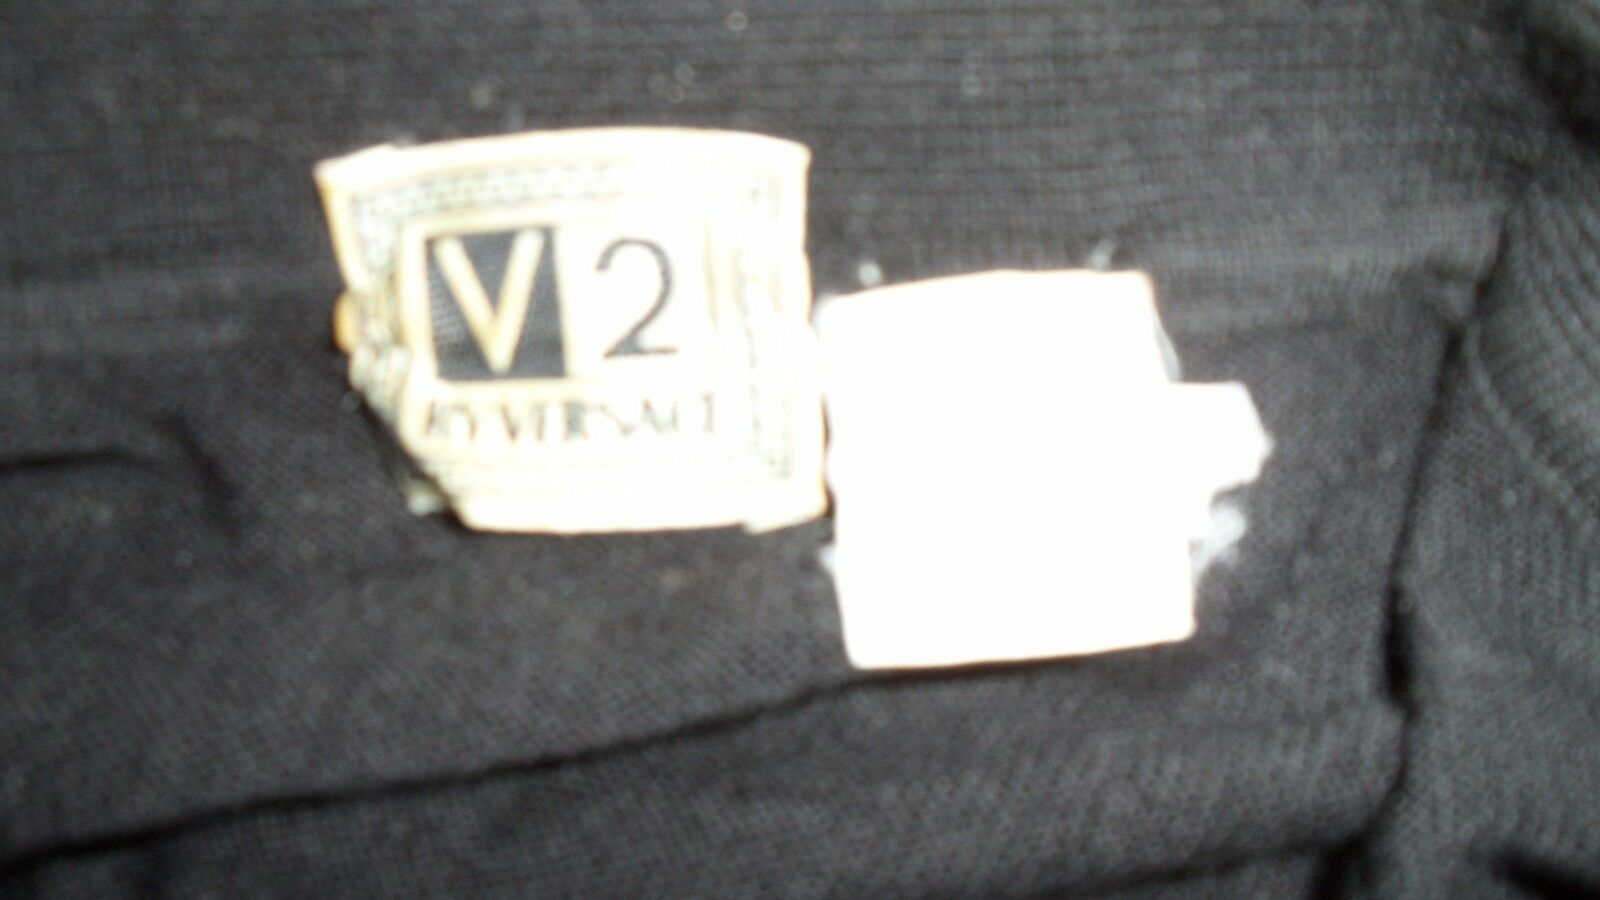 V2 BY VERSACE POLO Uomo'S SWEATER SHIRT, SHIRT, SHIRT, PERFECT FIT, MINT CONDITION, L 614d9b